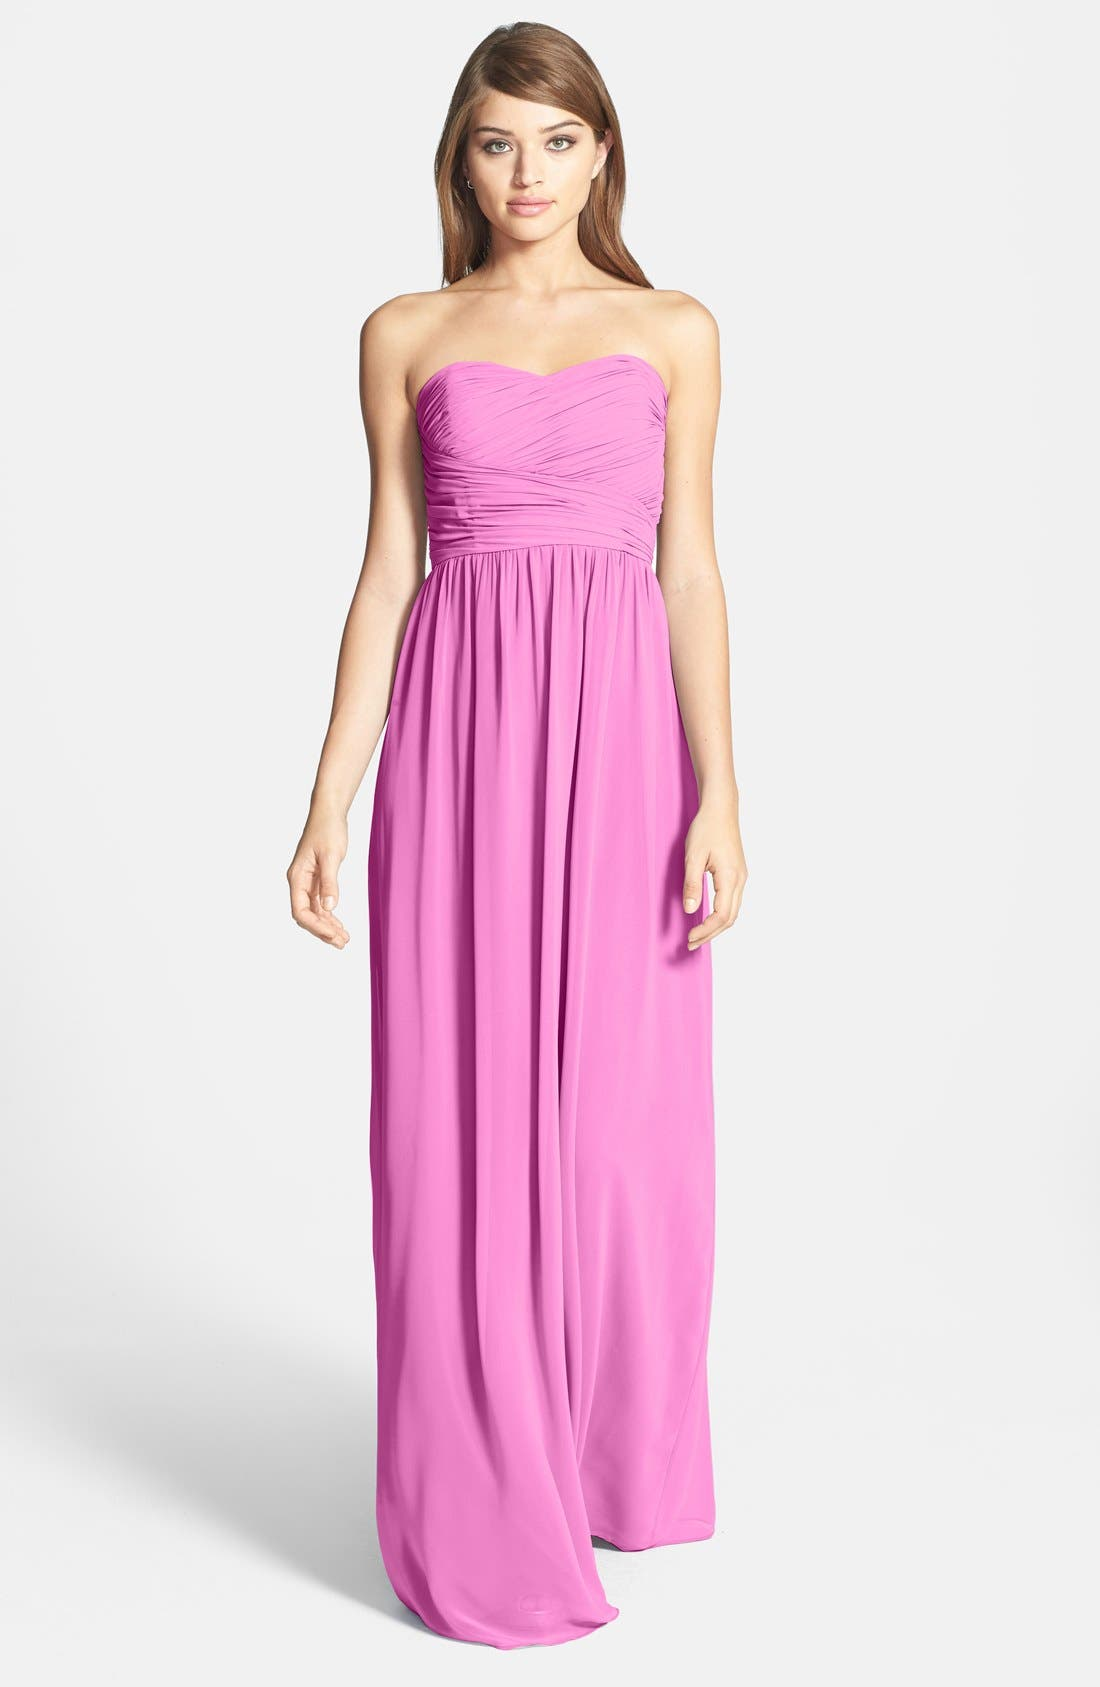 Alternate Image 1 Selected - Donna Morgan 'Stephanie' Strapless Ruched Chiffon Gown